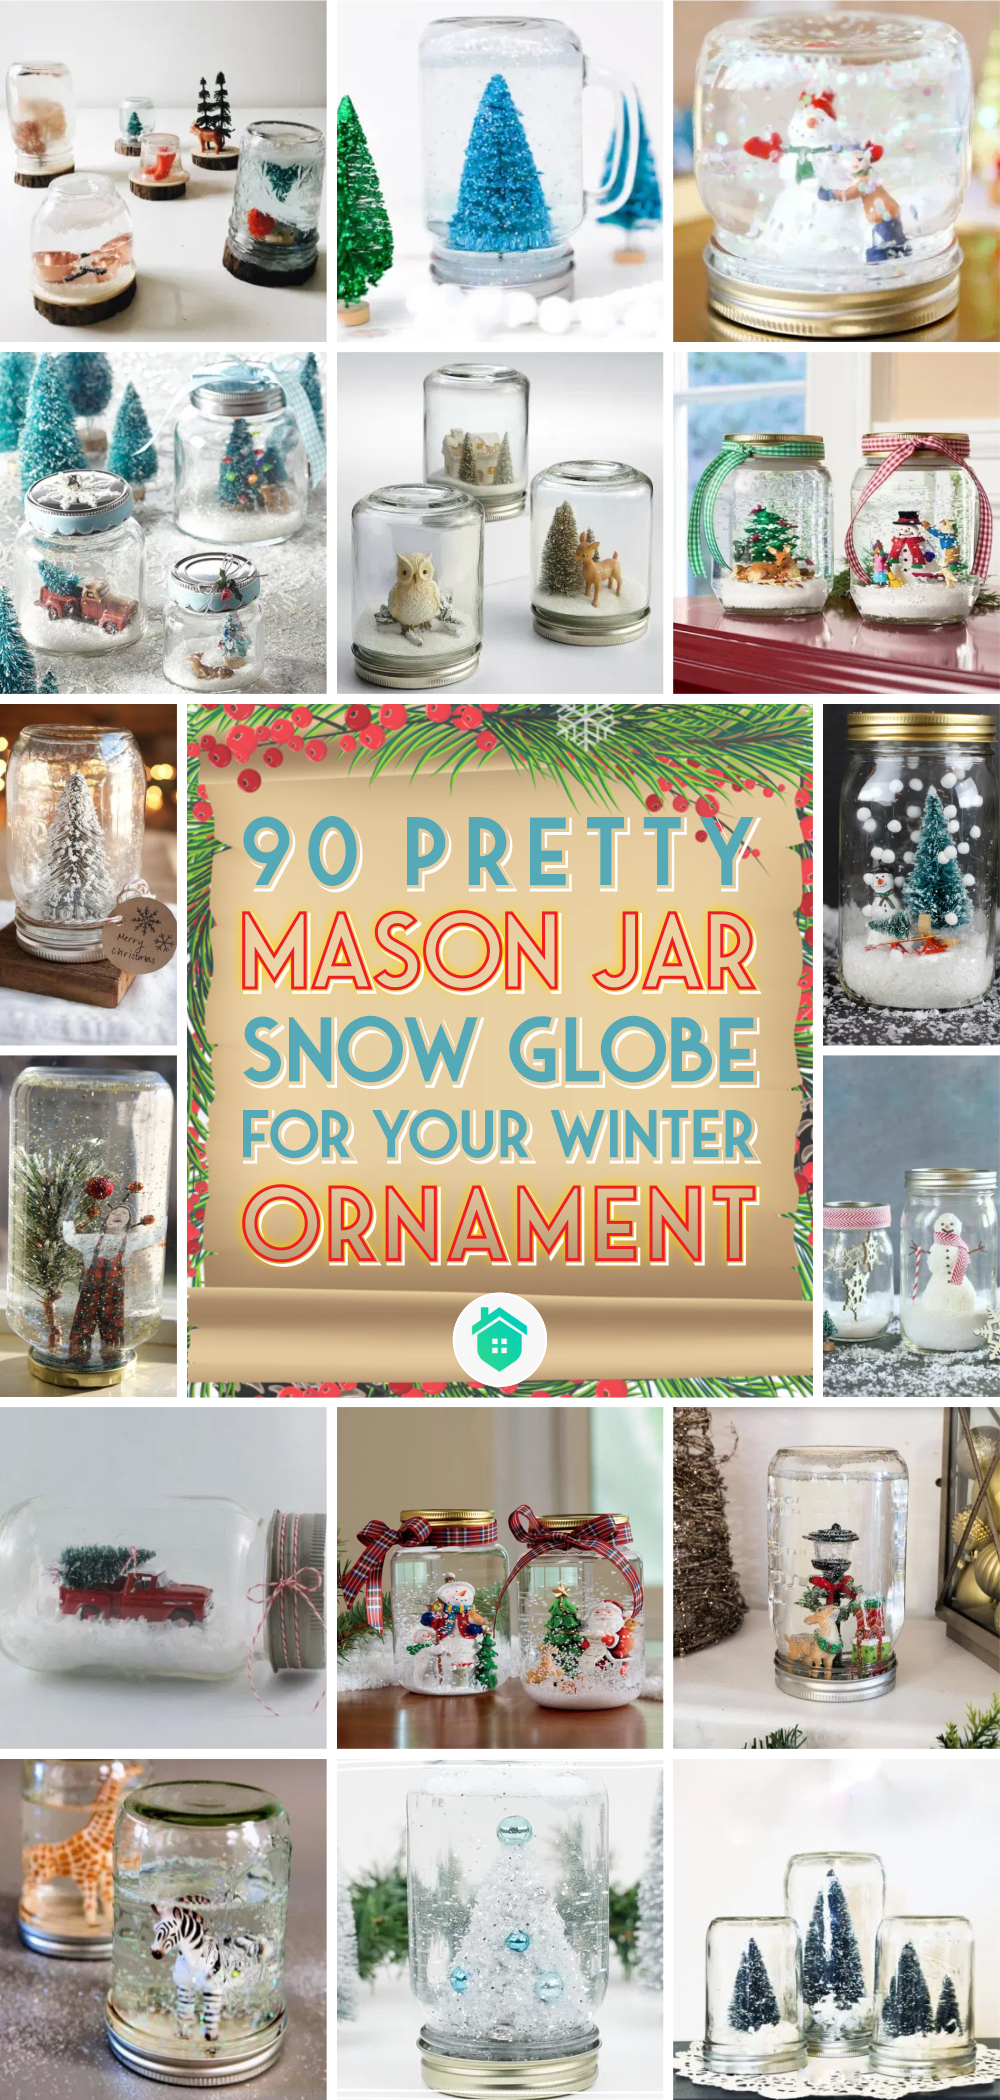 90 pretty mason jar snow globe for your winter ornament1